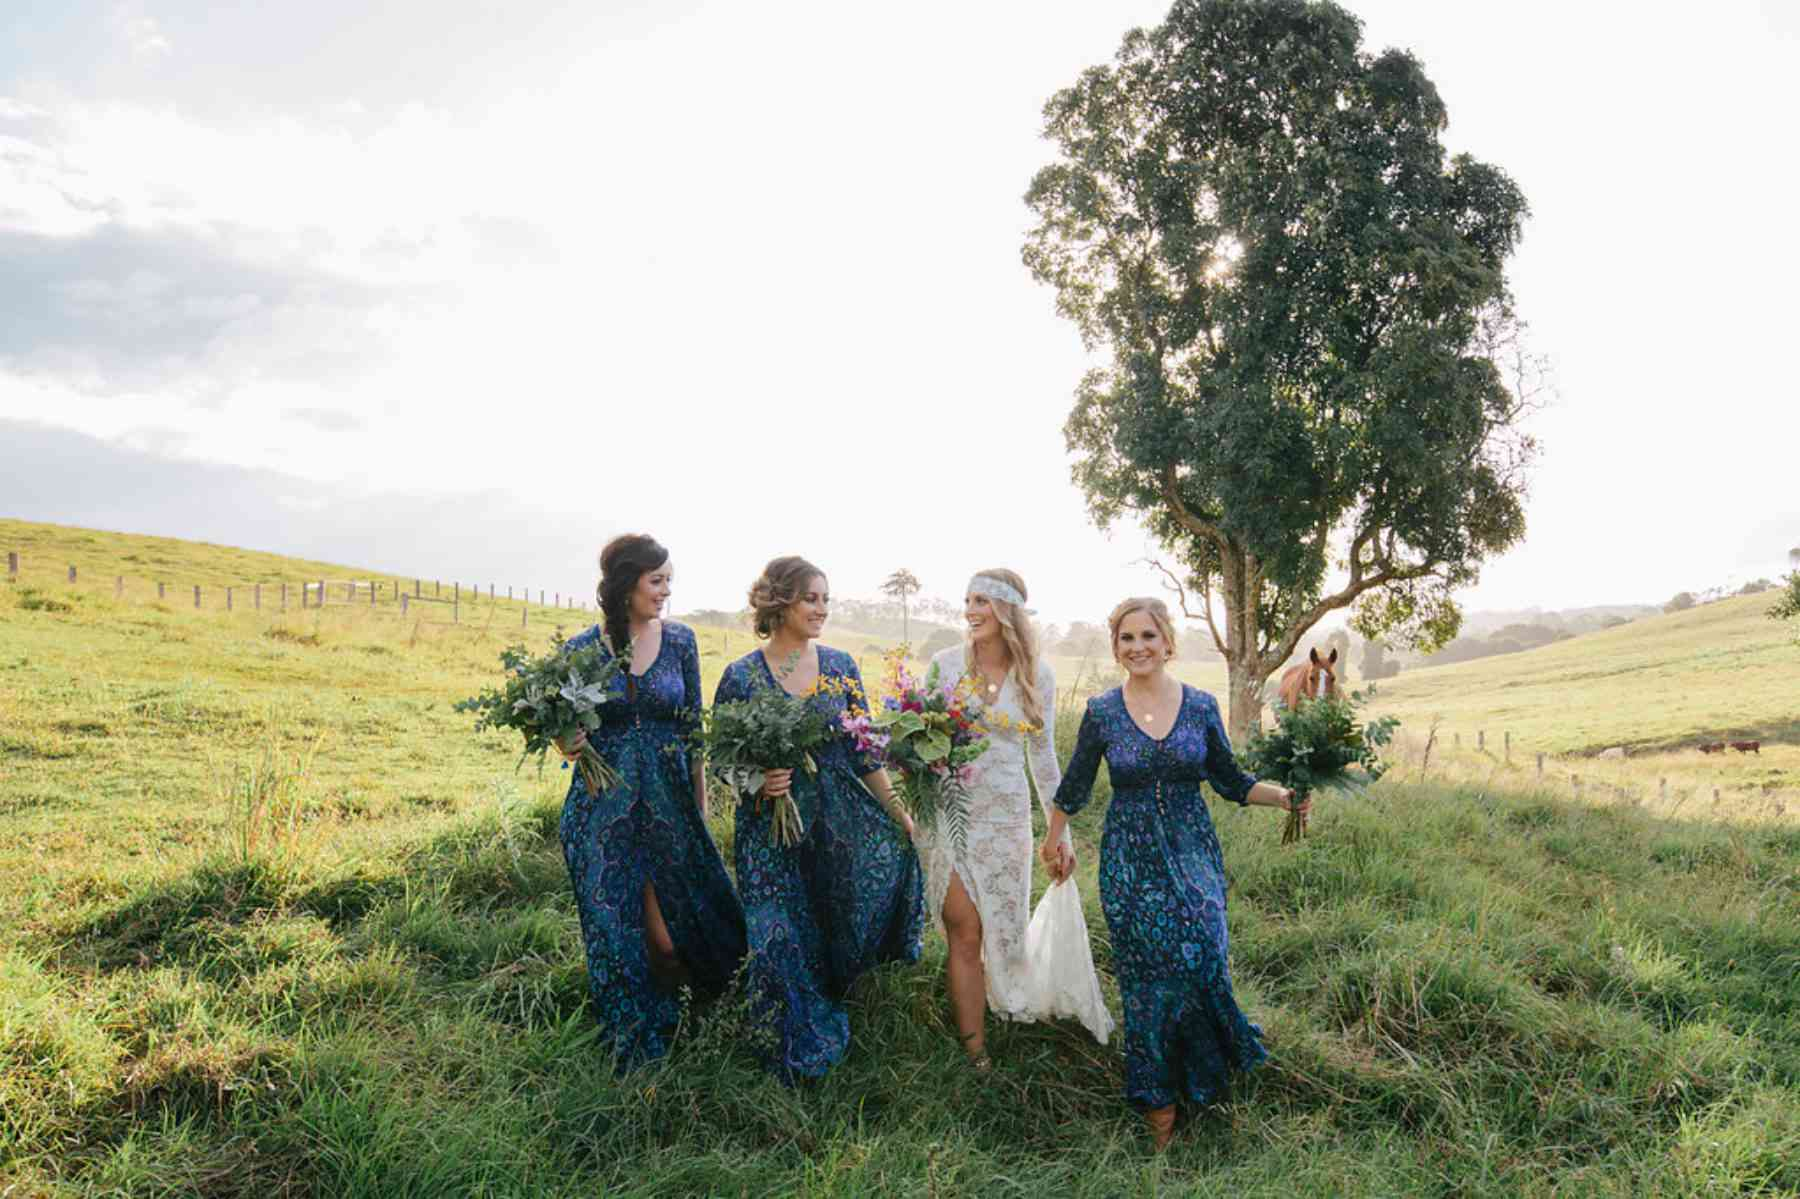 Bridesmaids wearing paisley printed dresses that evoke the countryside.